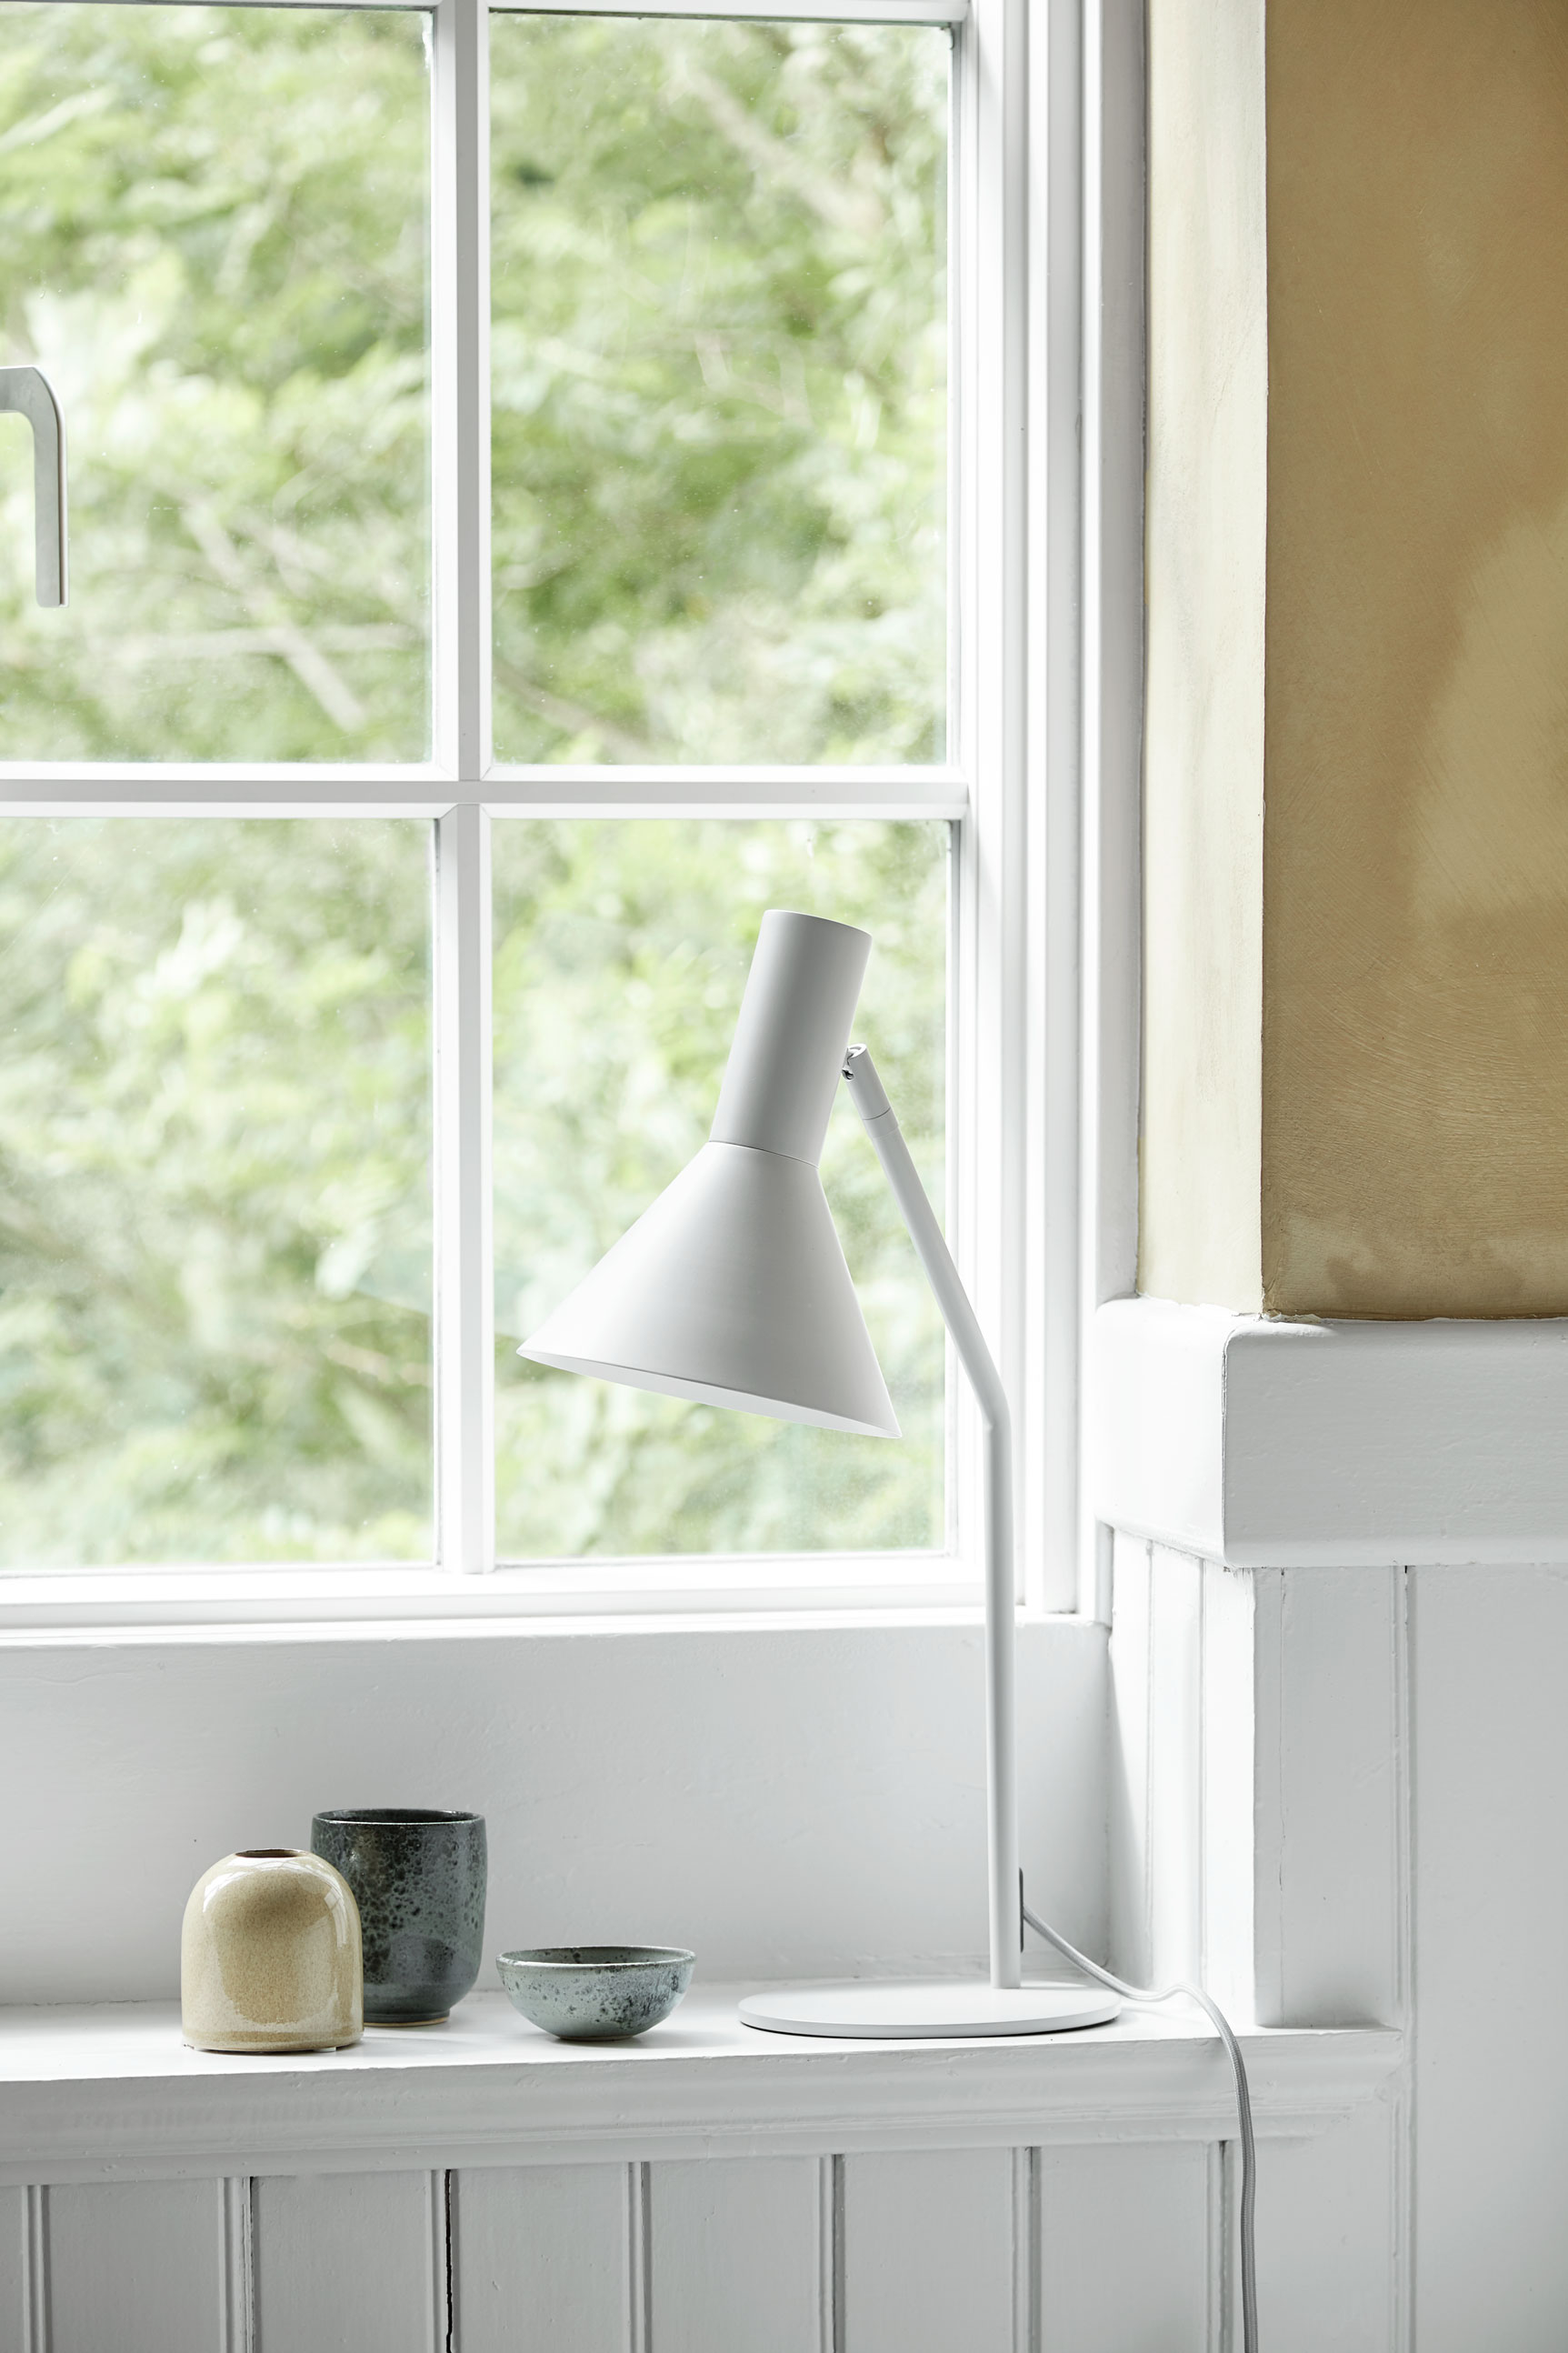 Metal table lamp with tip. Dimensions: H50 cm Variants: Black  (NEW)  | Almond  (NEW)  | Light Grey  (NEW)     MORE